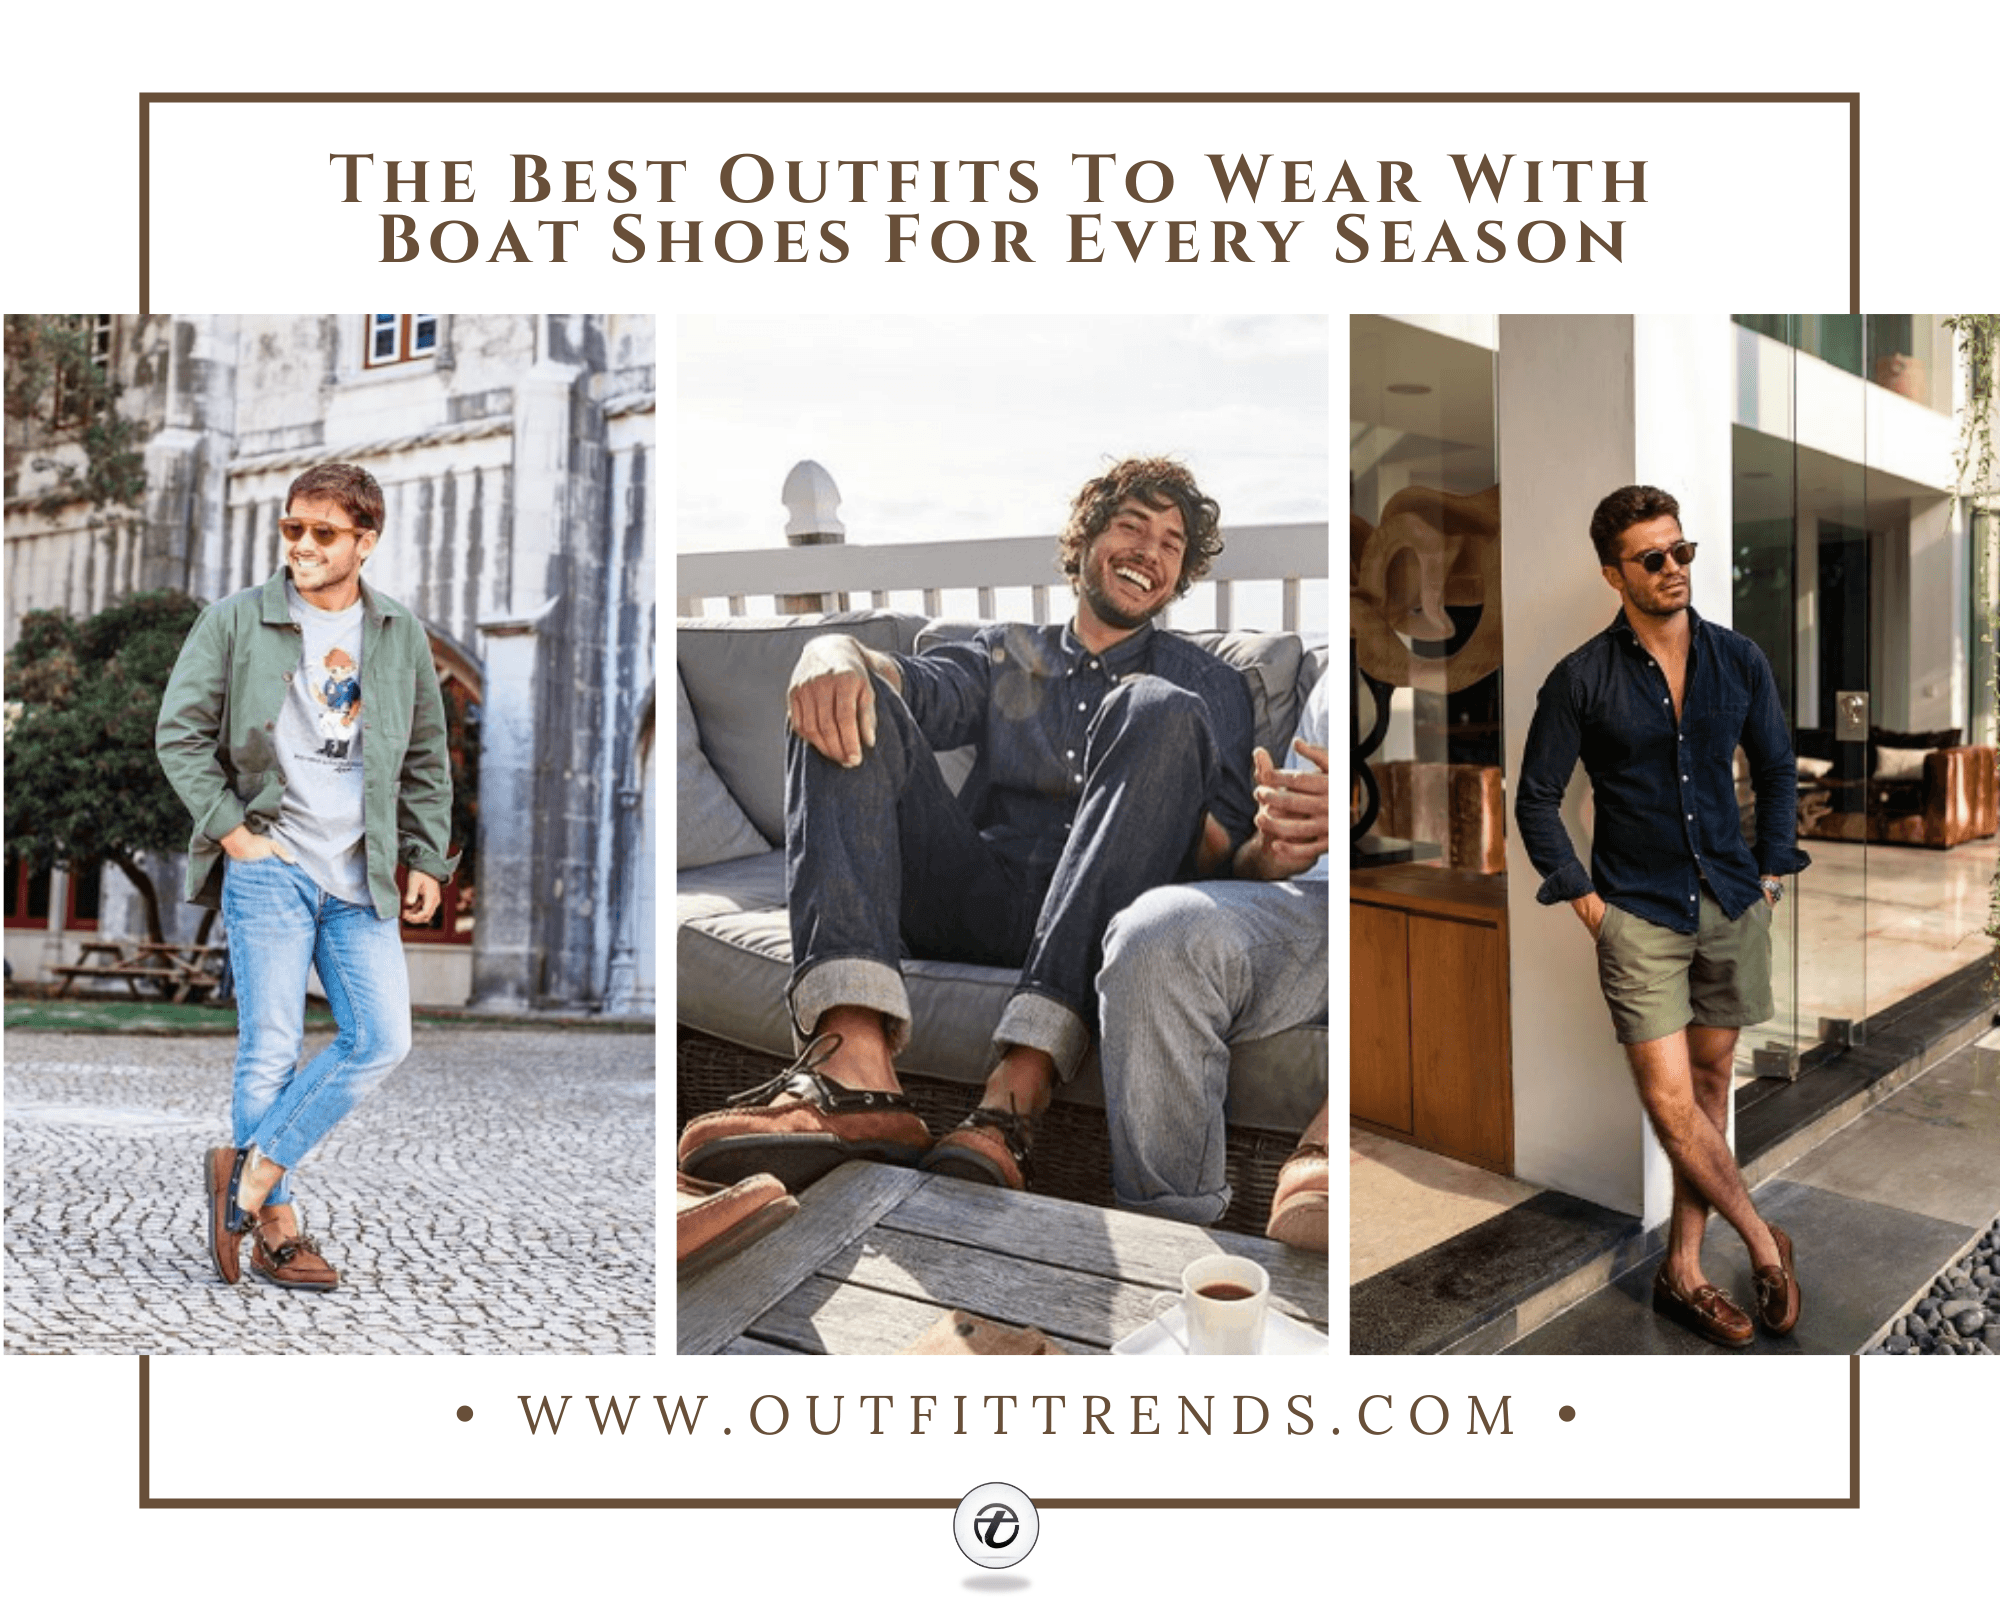 Men Boat Shoe Outfits 31 Ideas On How To Wear Boat Shoes